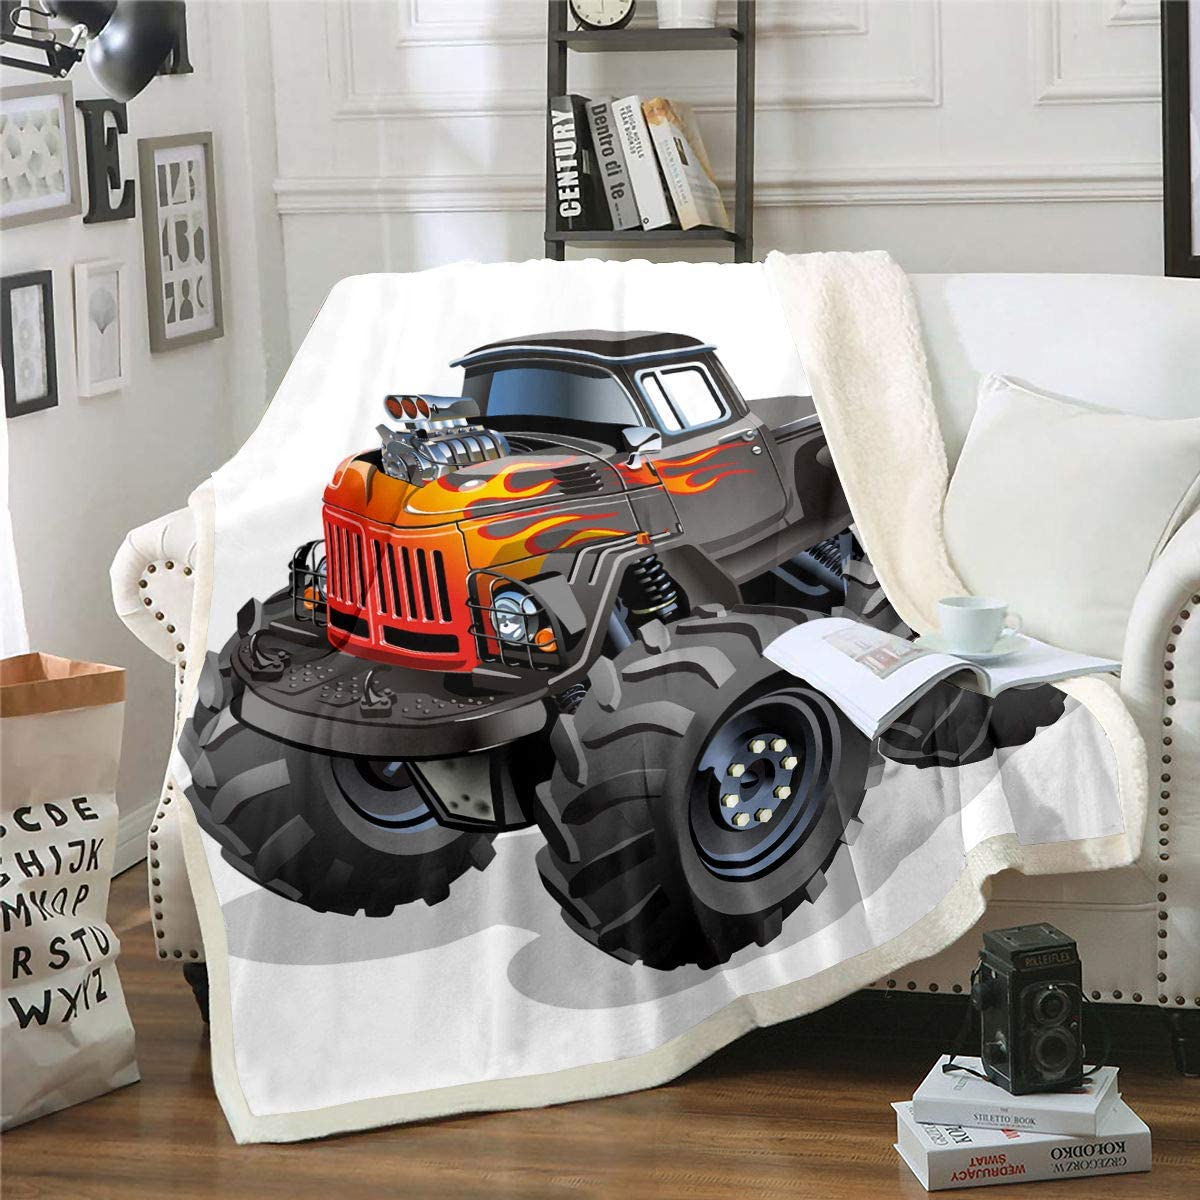 "Monster Truck Fleece Blanket Speed Hobby Sports Sherpa Blanket For Kids Teen Boys Young Man Enormous Wheels Mountain Buggy Car Blanket Throw Fire Vehicle Fuzzy Blanket Sofa Decor Red King 87""x95"""